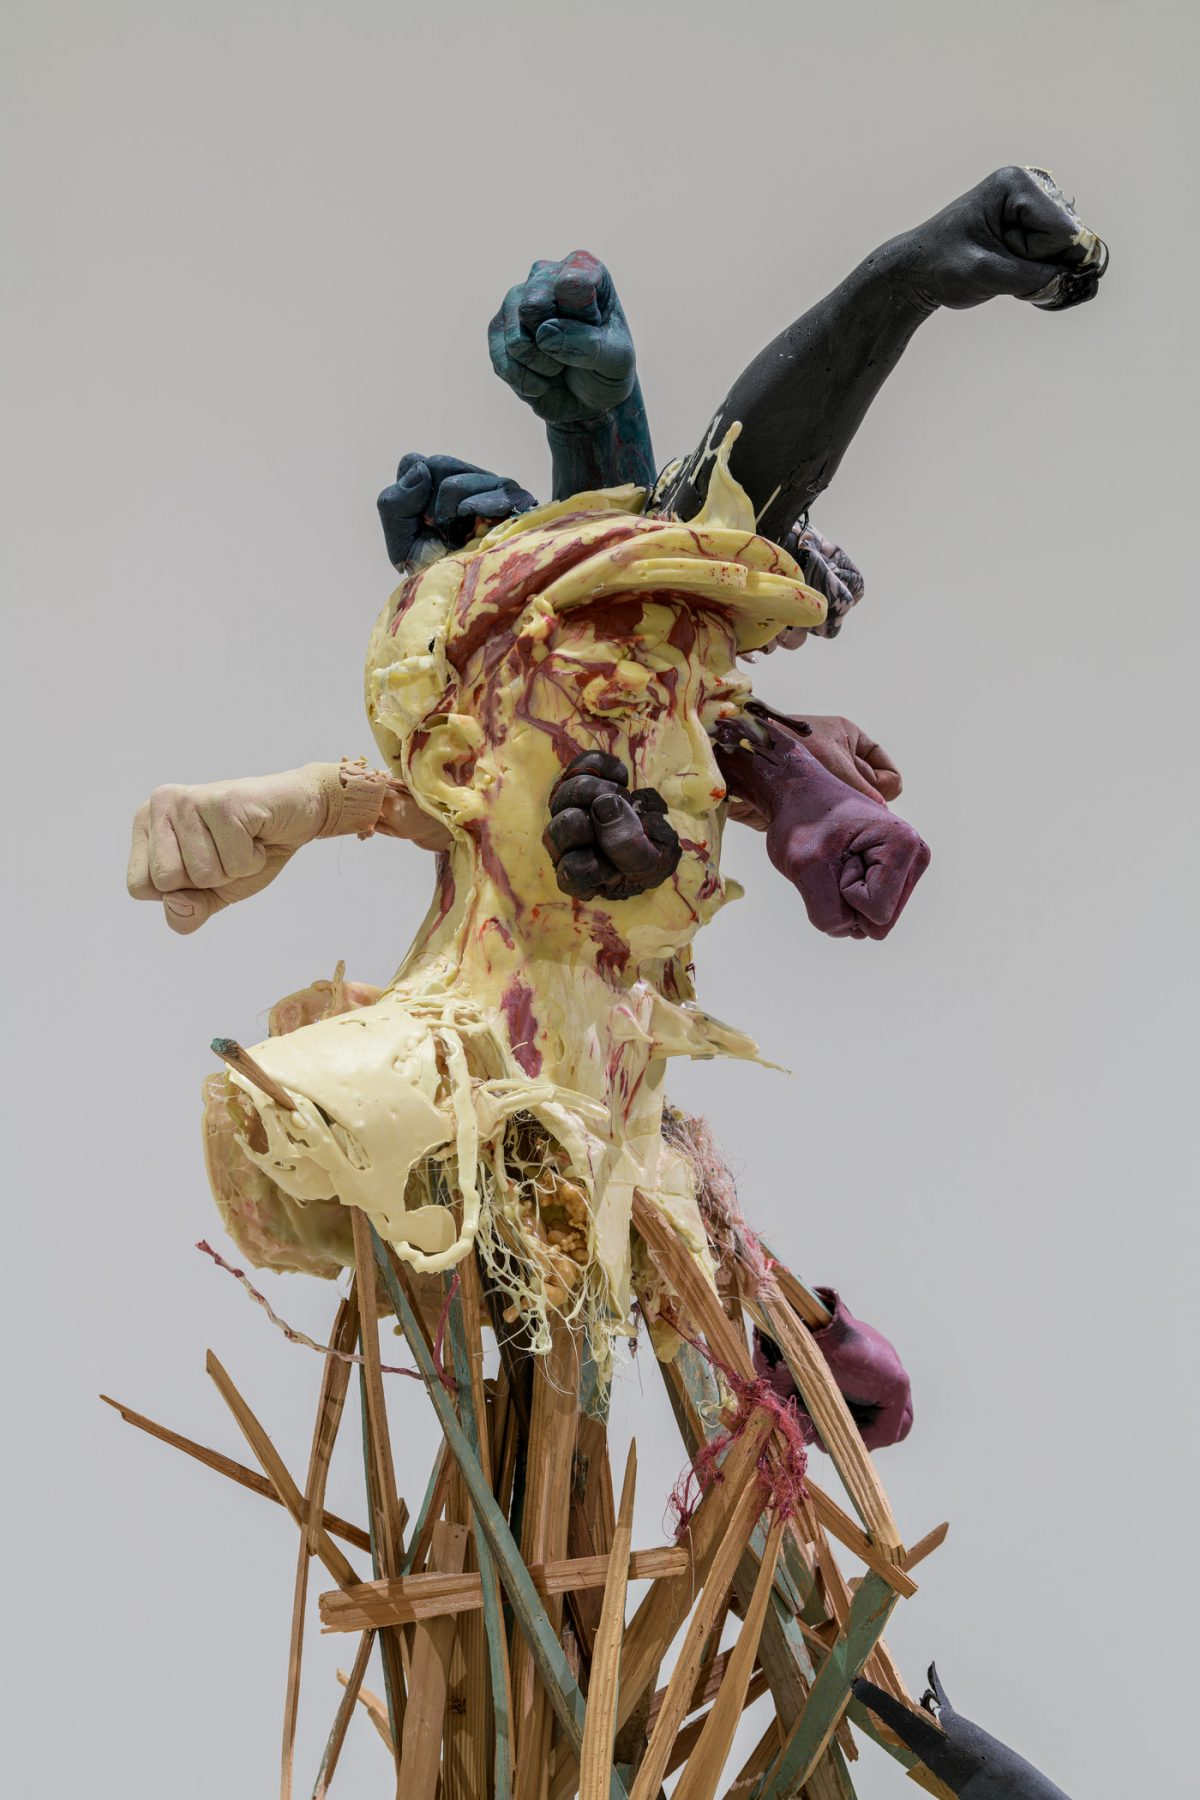 Jin Shan, Mistaken, 2015. Wood and plastic. Detail. Photo courtesy of © Museum Associates/LACMA.